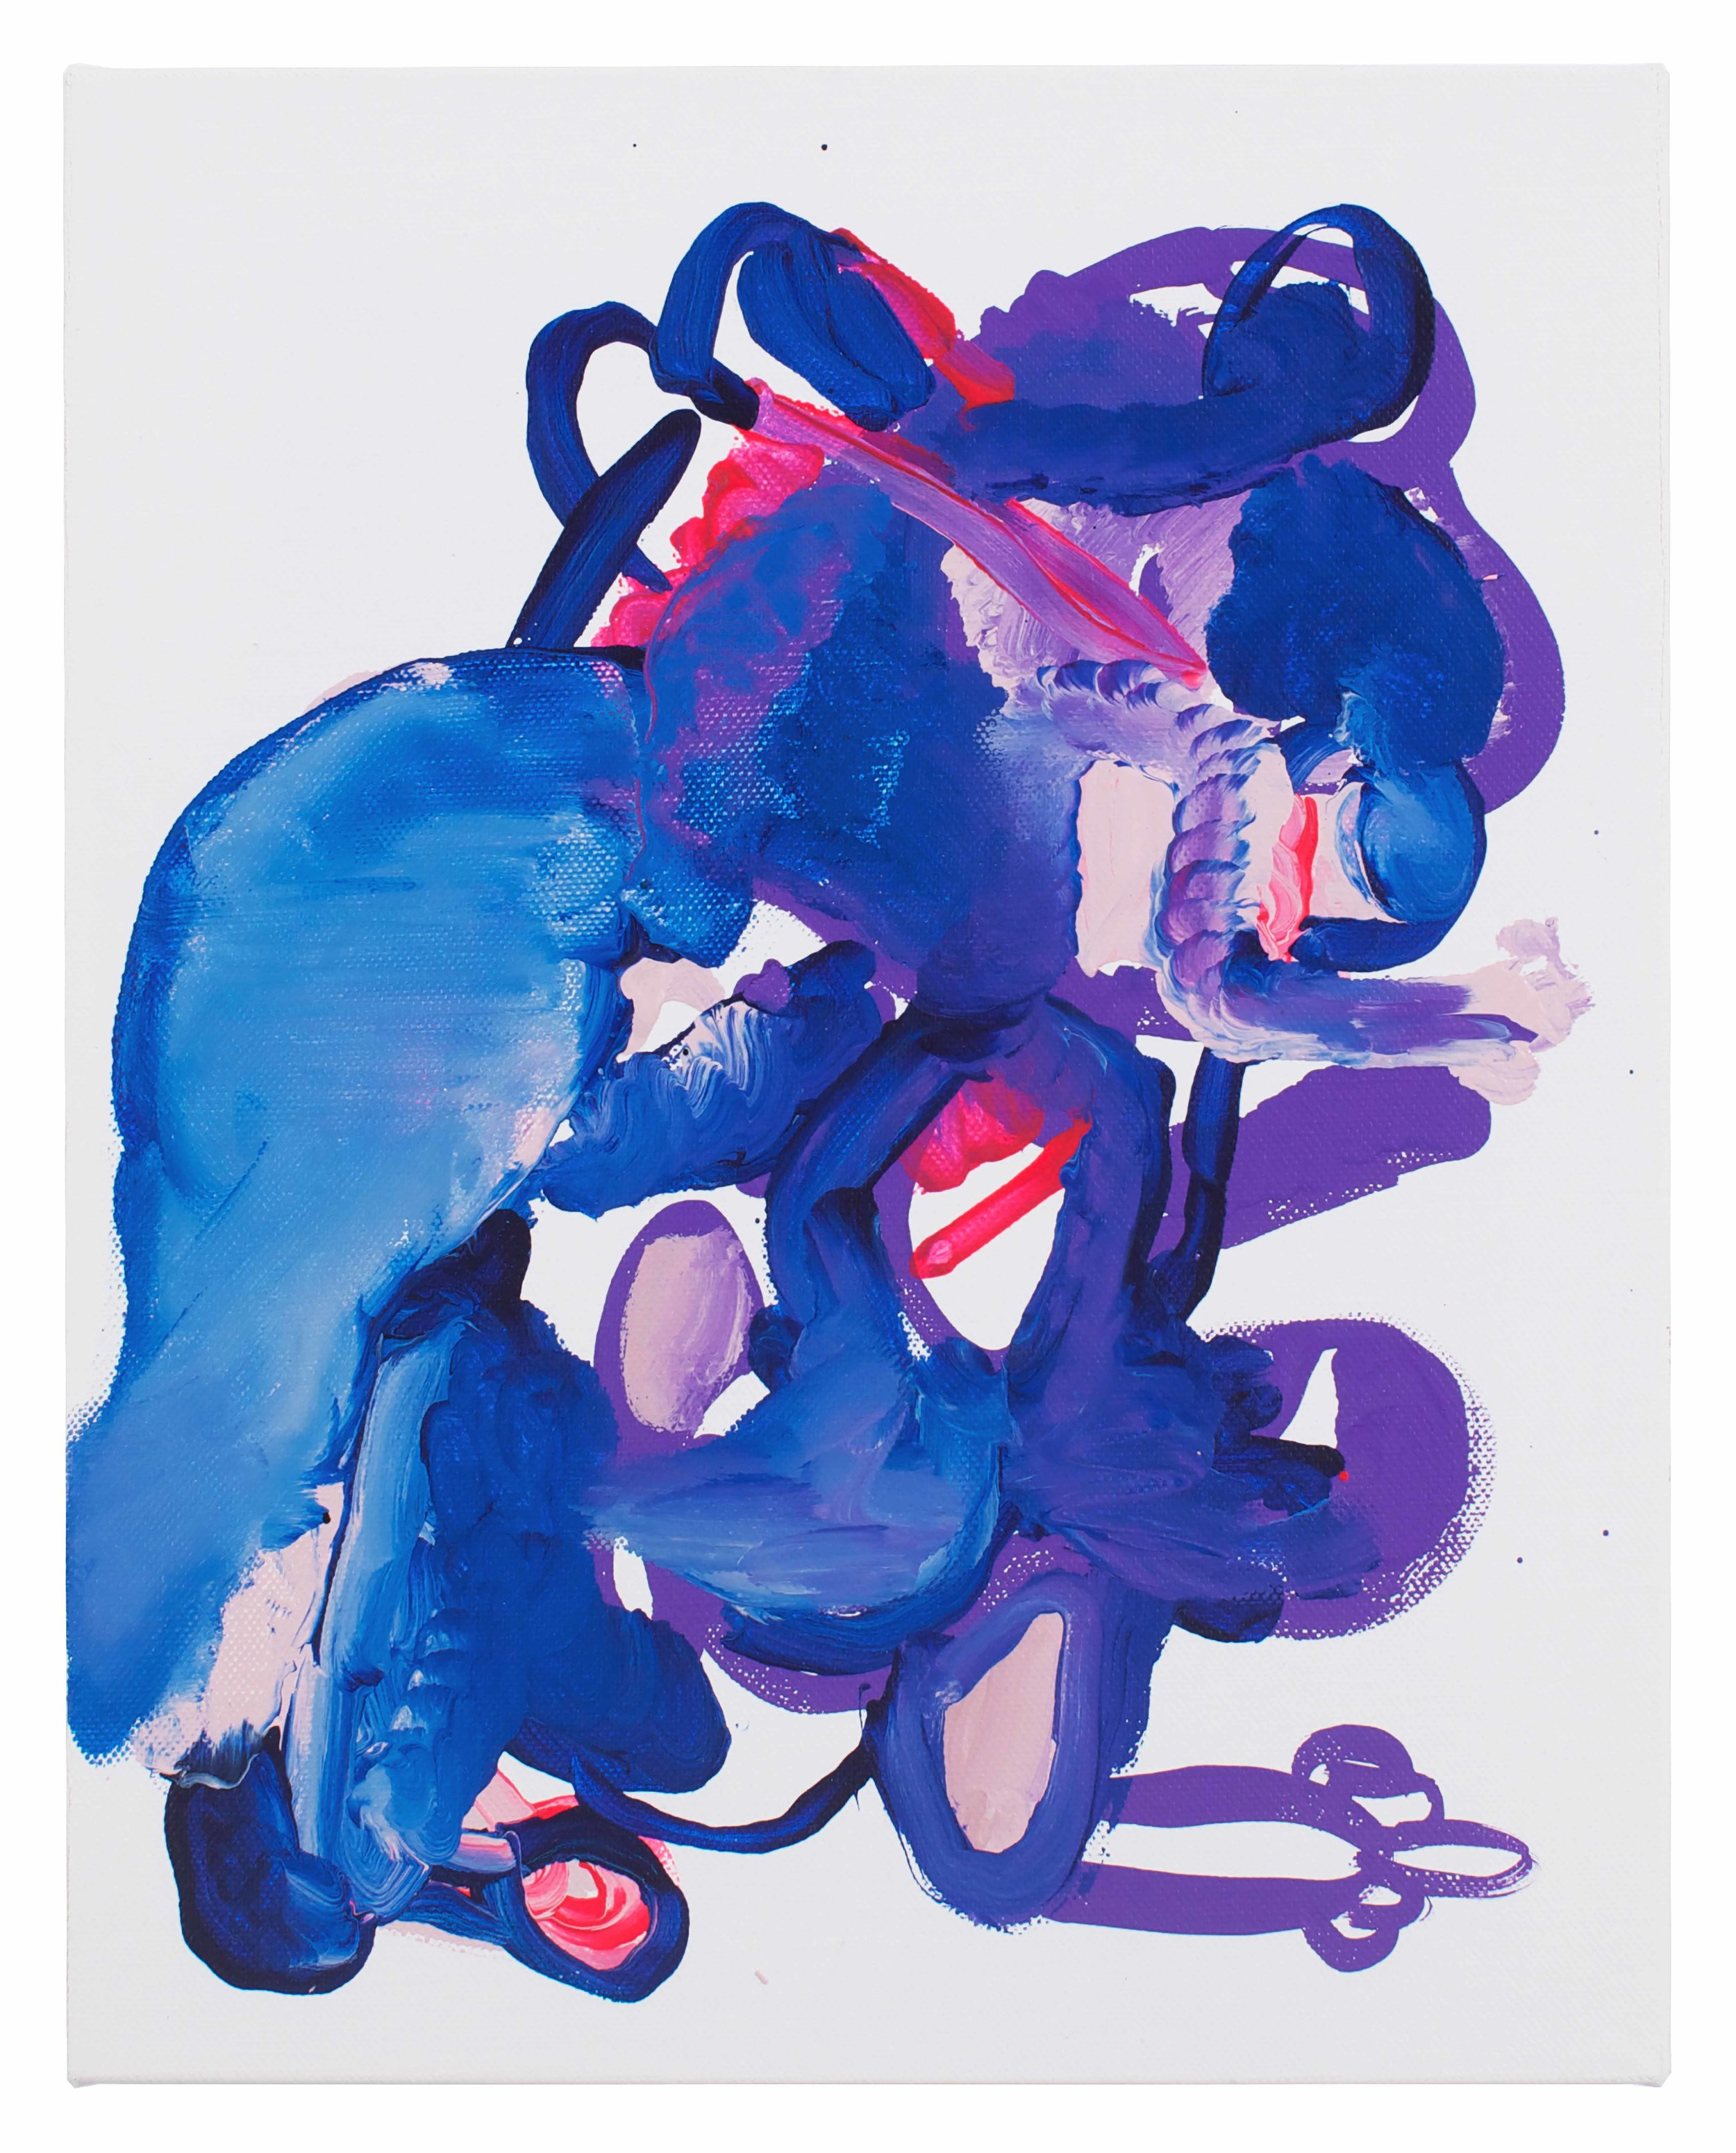 Drew Beattie and Ben Shepard  Blue Figure  2014 acrylic on canvas 14 x 11 inches